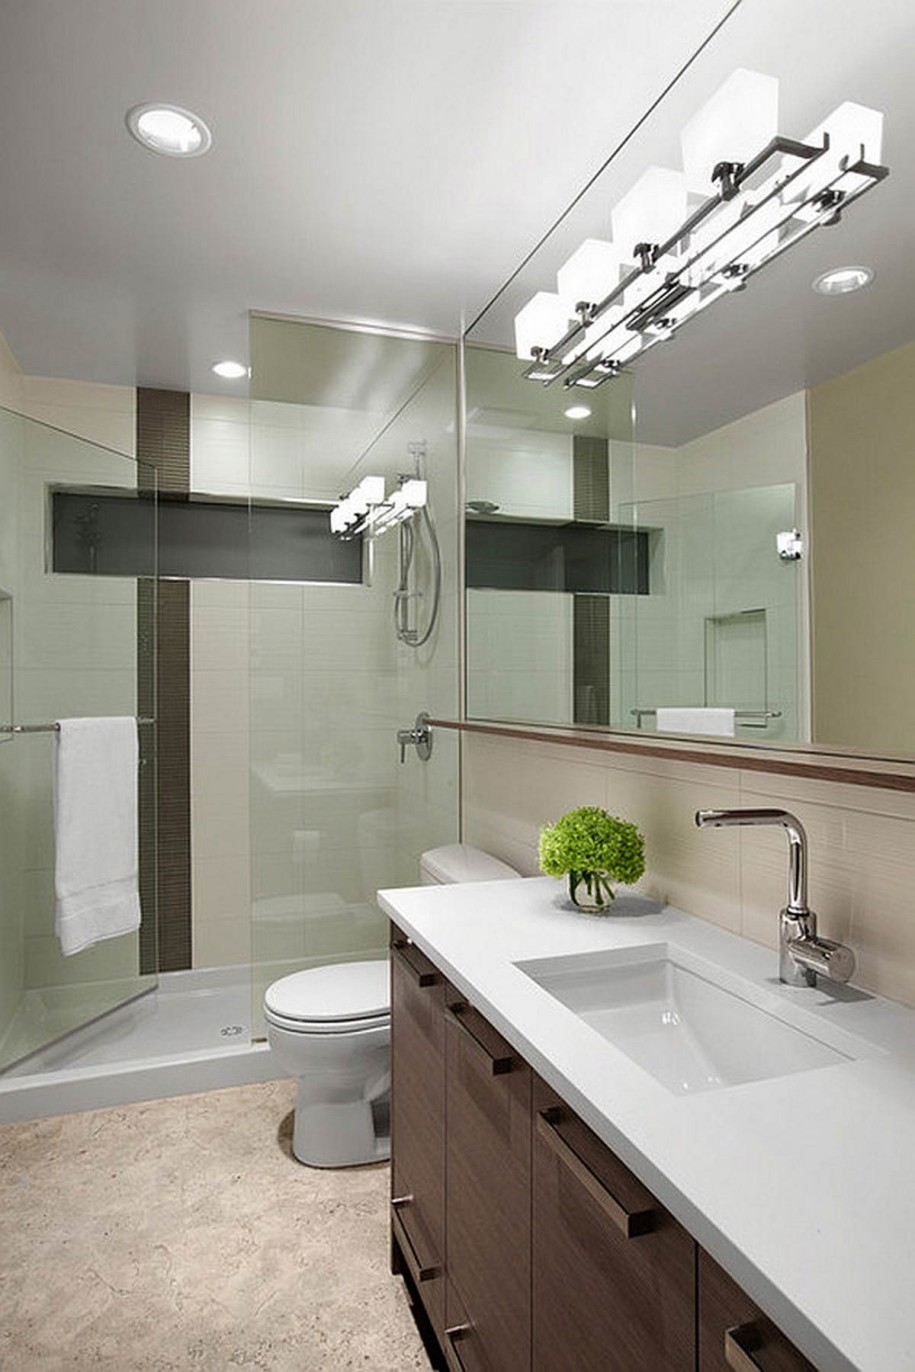 32 good ideas and pictures of modern bathroom tiles texture - Images of bathroom vanity lighting ...